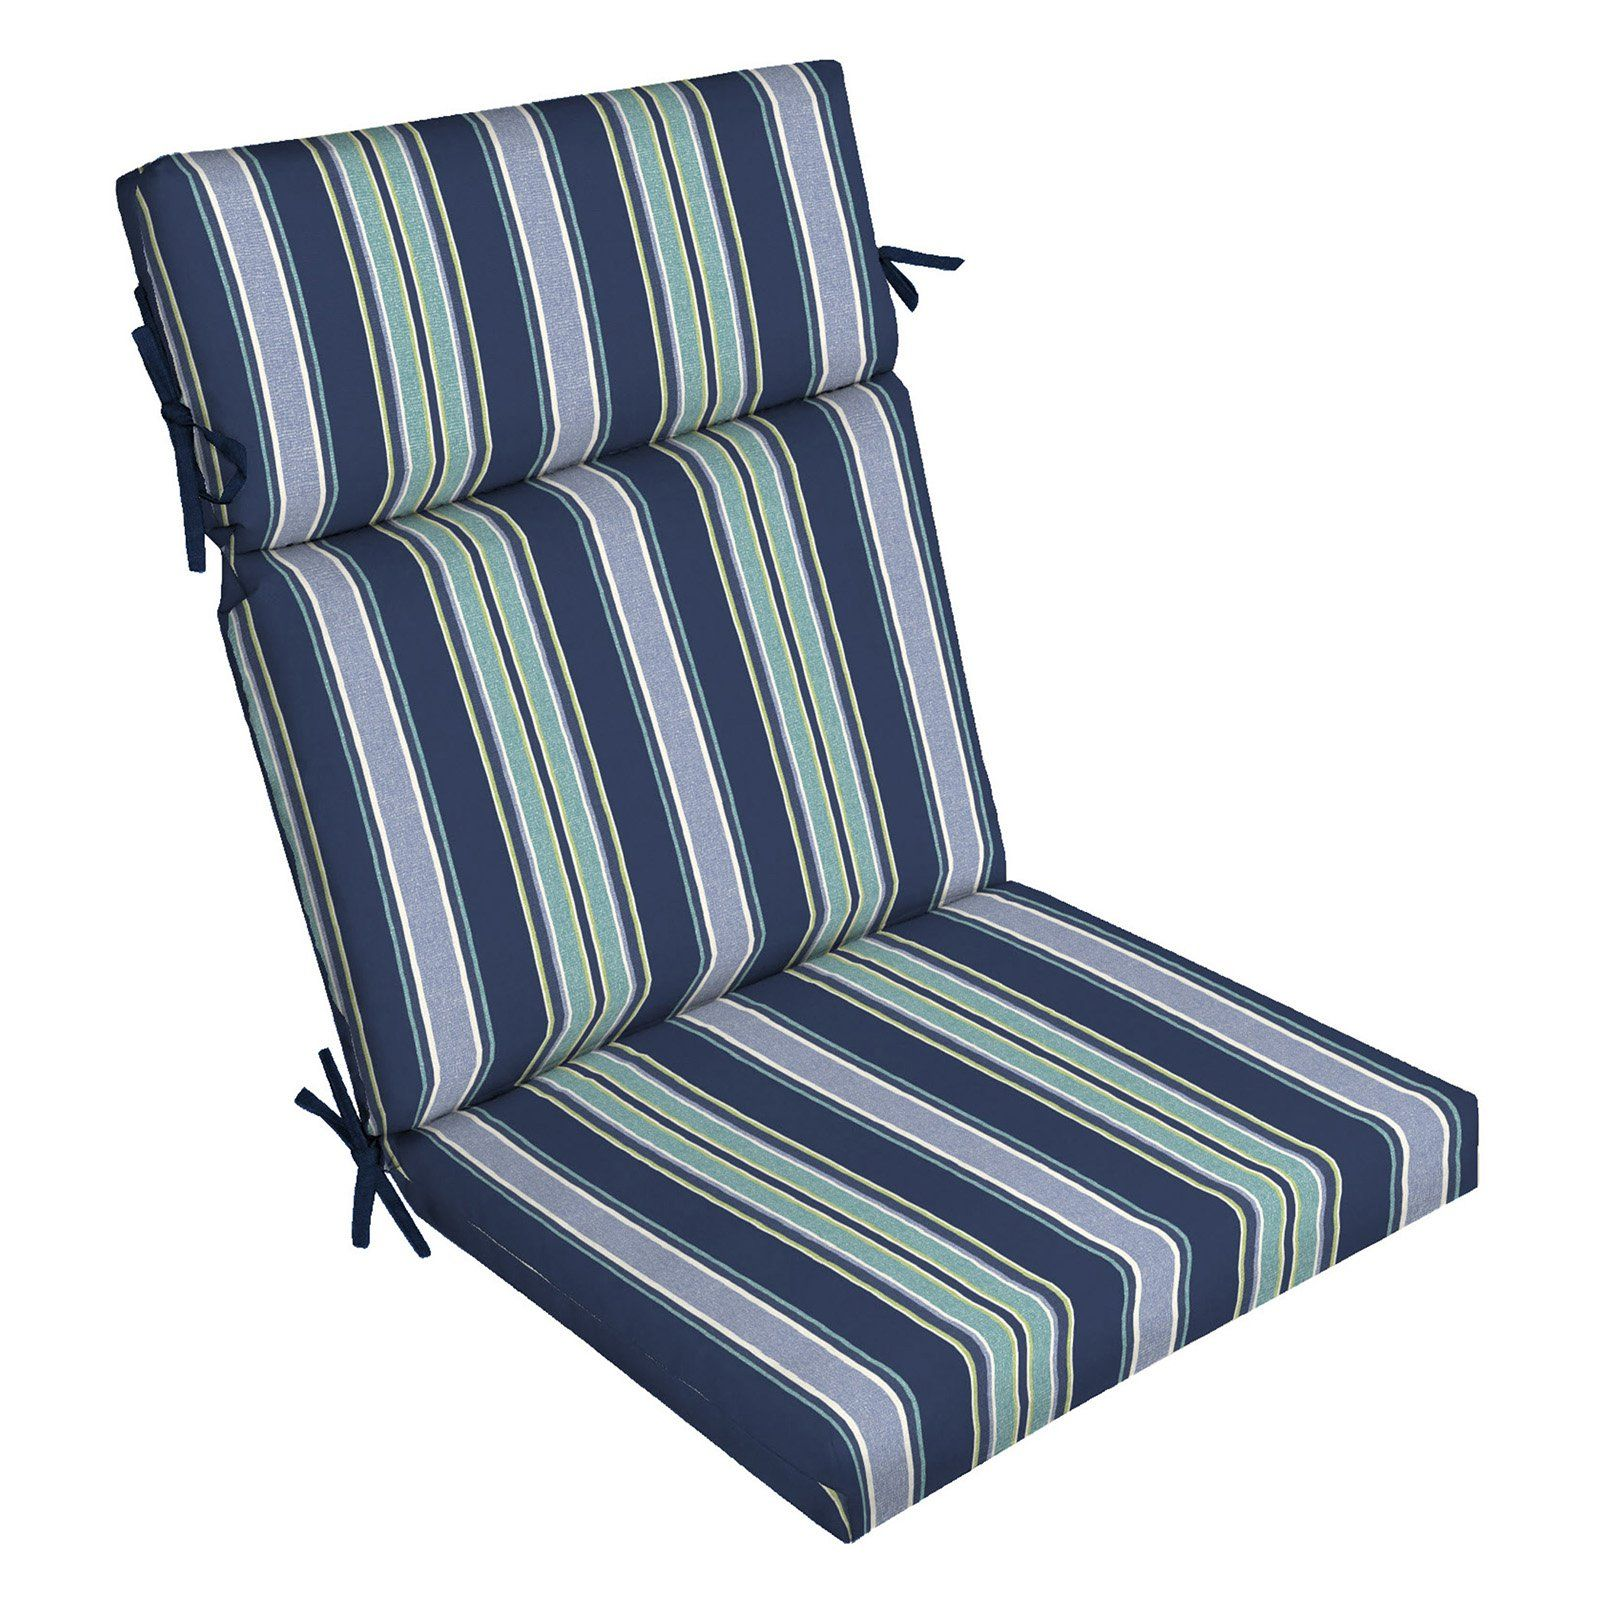 Arden Selections Sapphire Aurora Stripe Outdoor Dining Chair Cushion In 2019 Outdoor Chair Cushions Dining Chair Cushions Chair Cushions